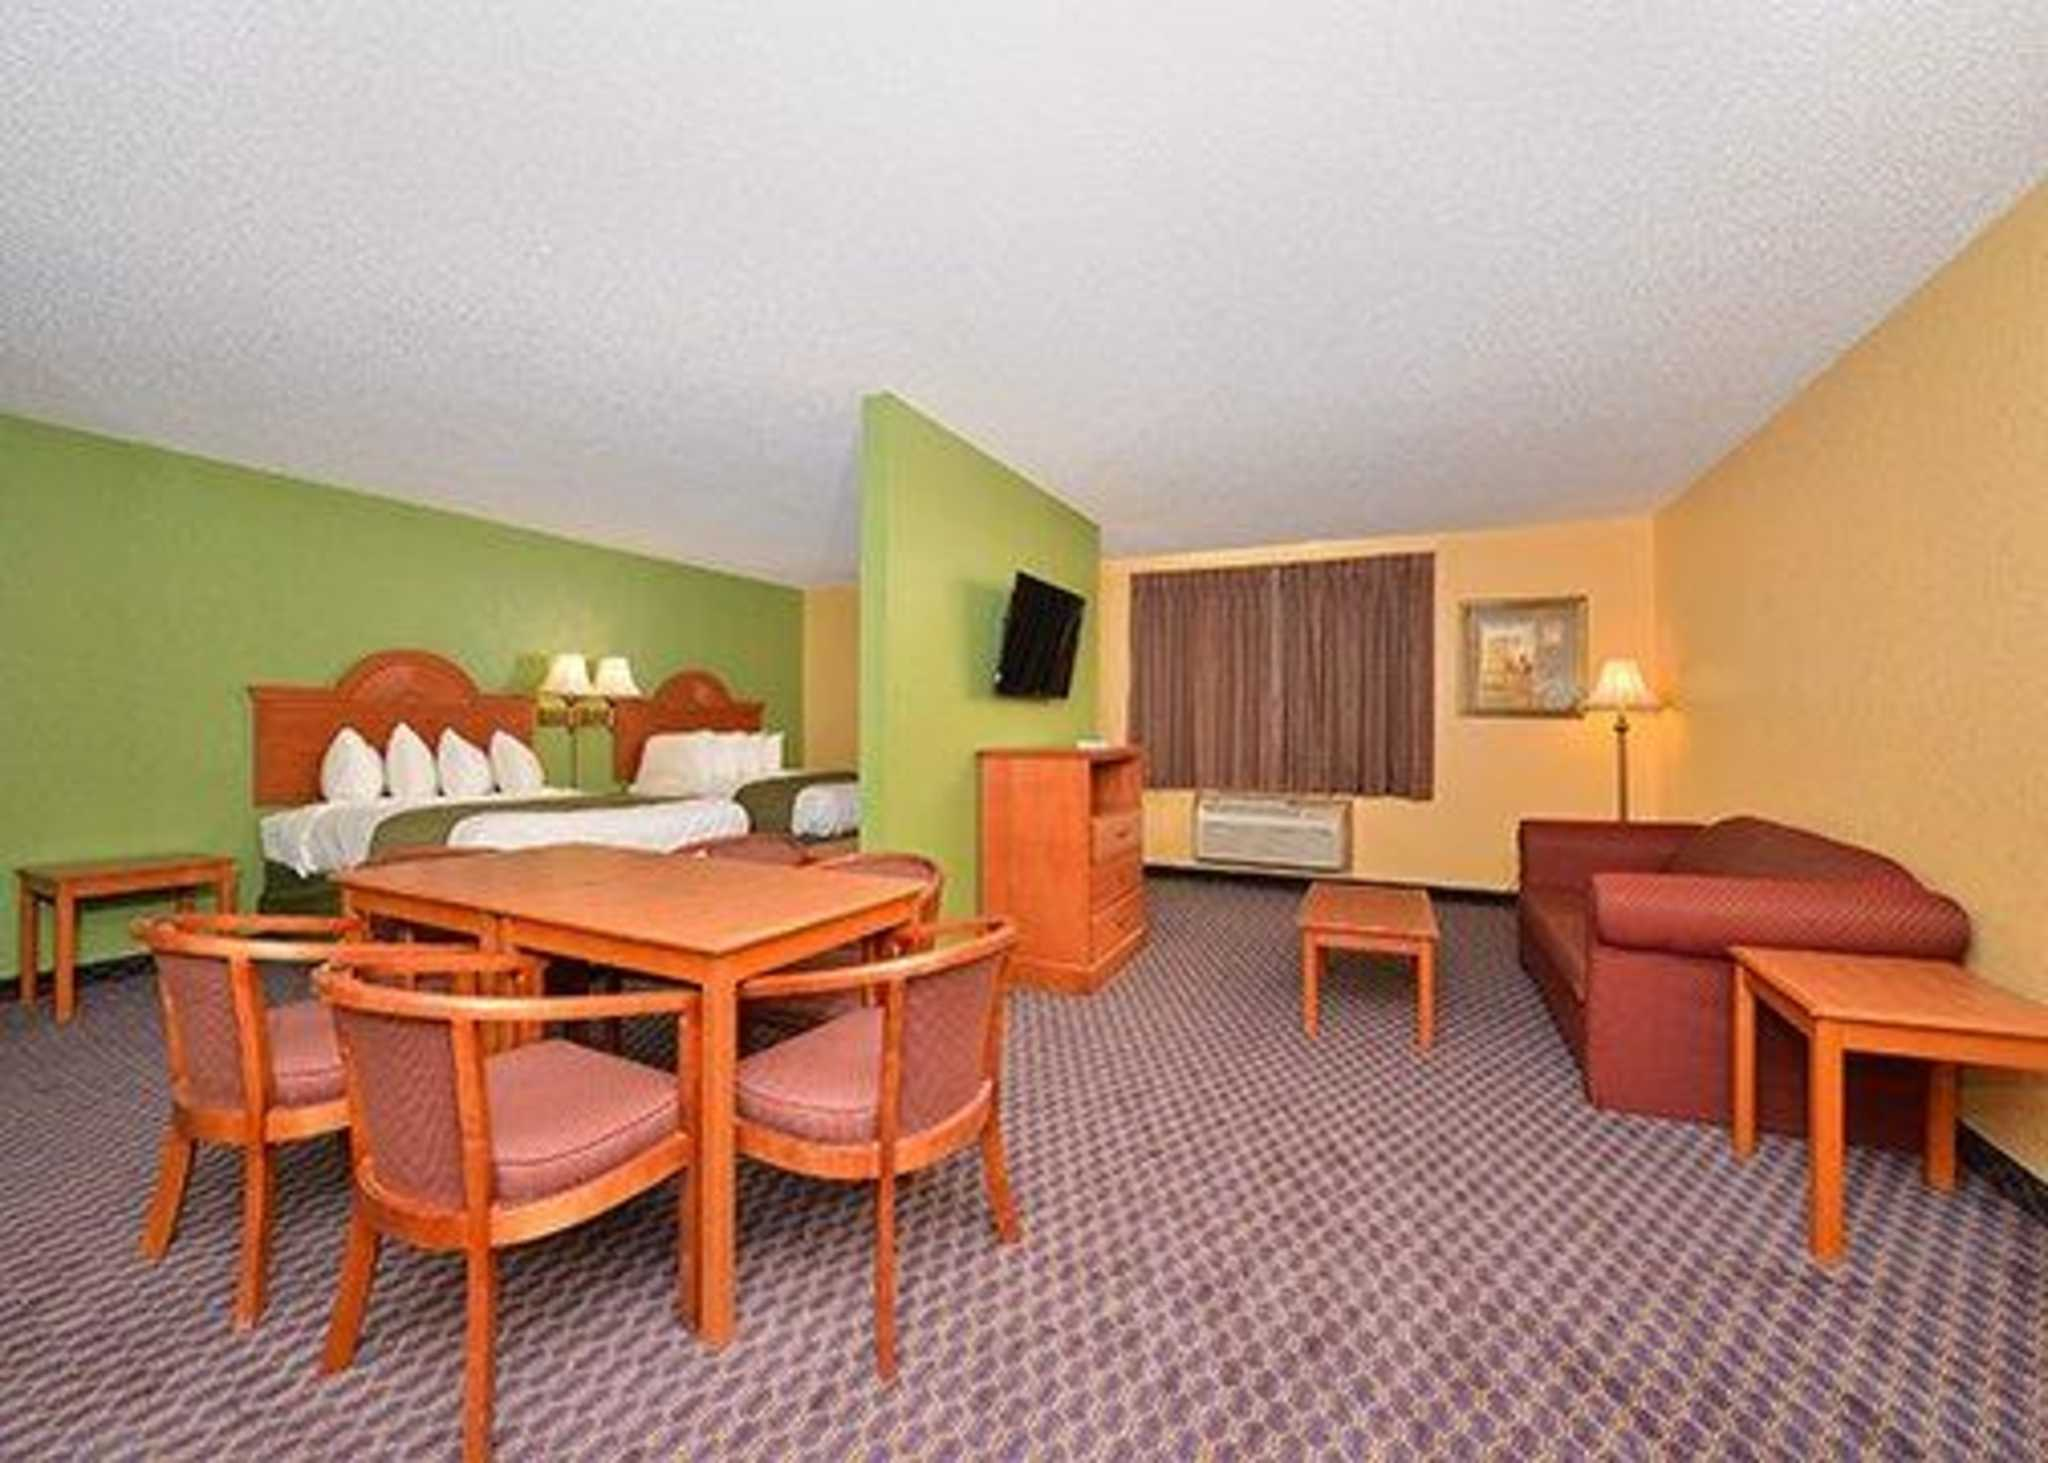 Quality Inn & Suites image 25